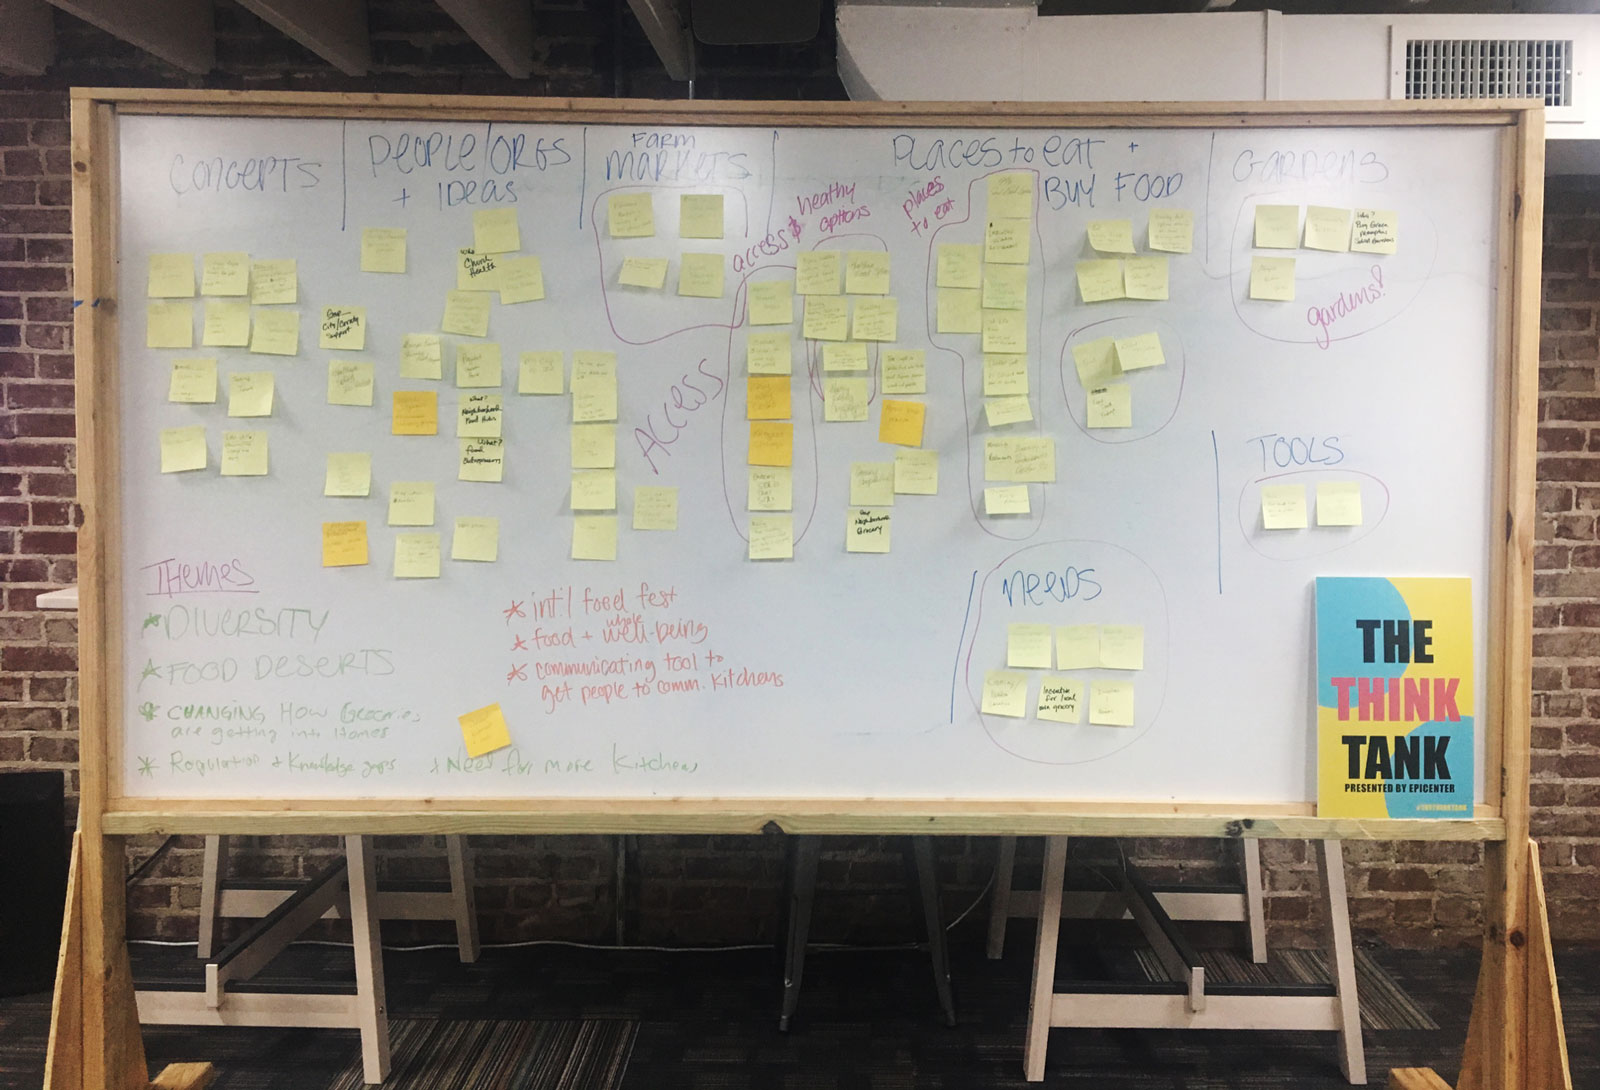 Food and design thinking workshop insights on white board